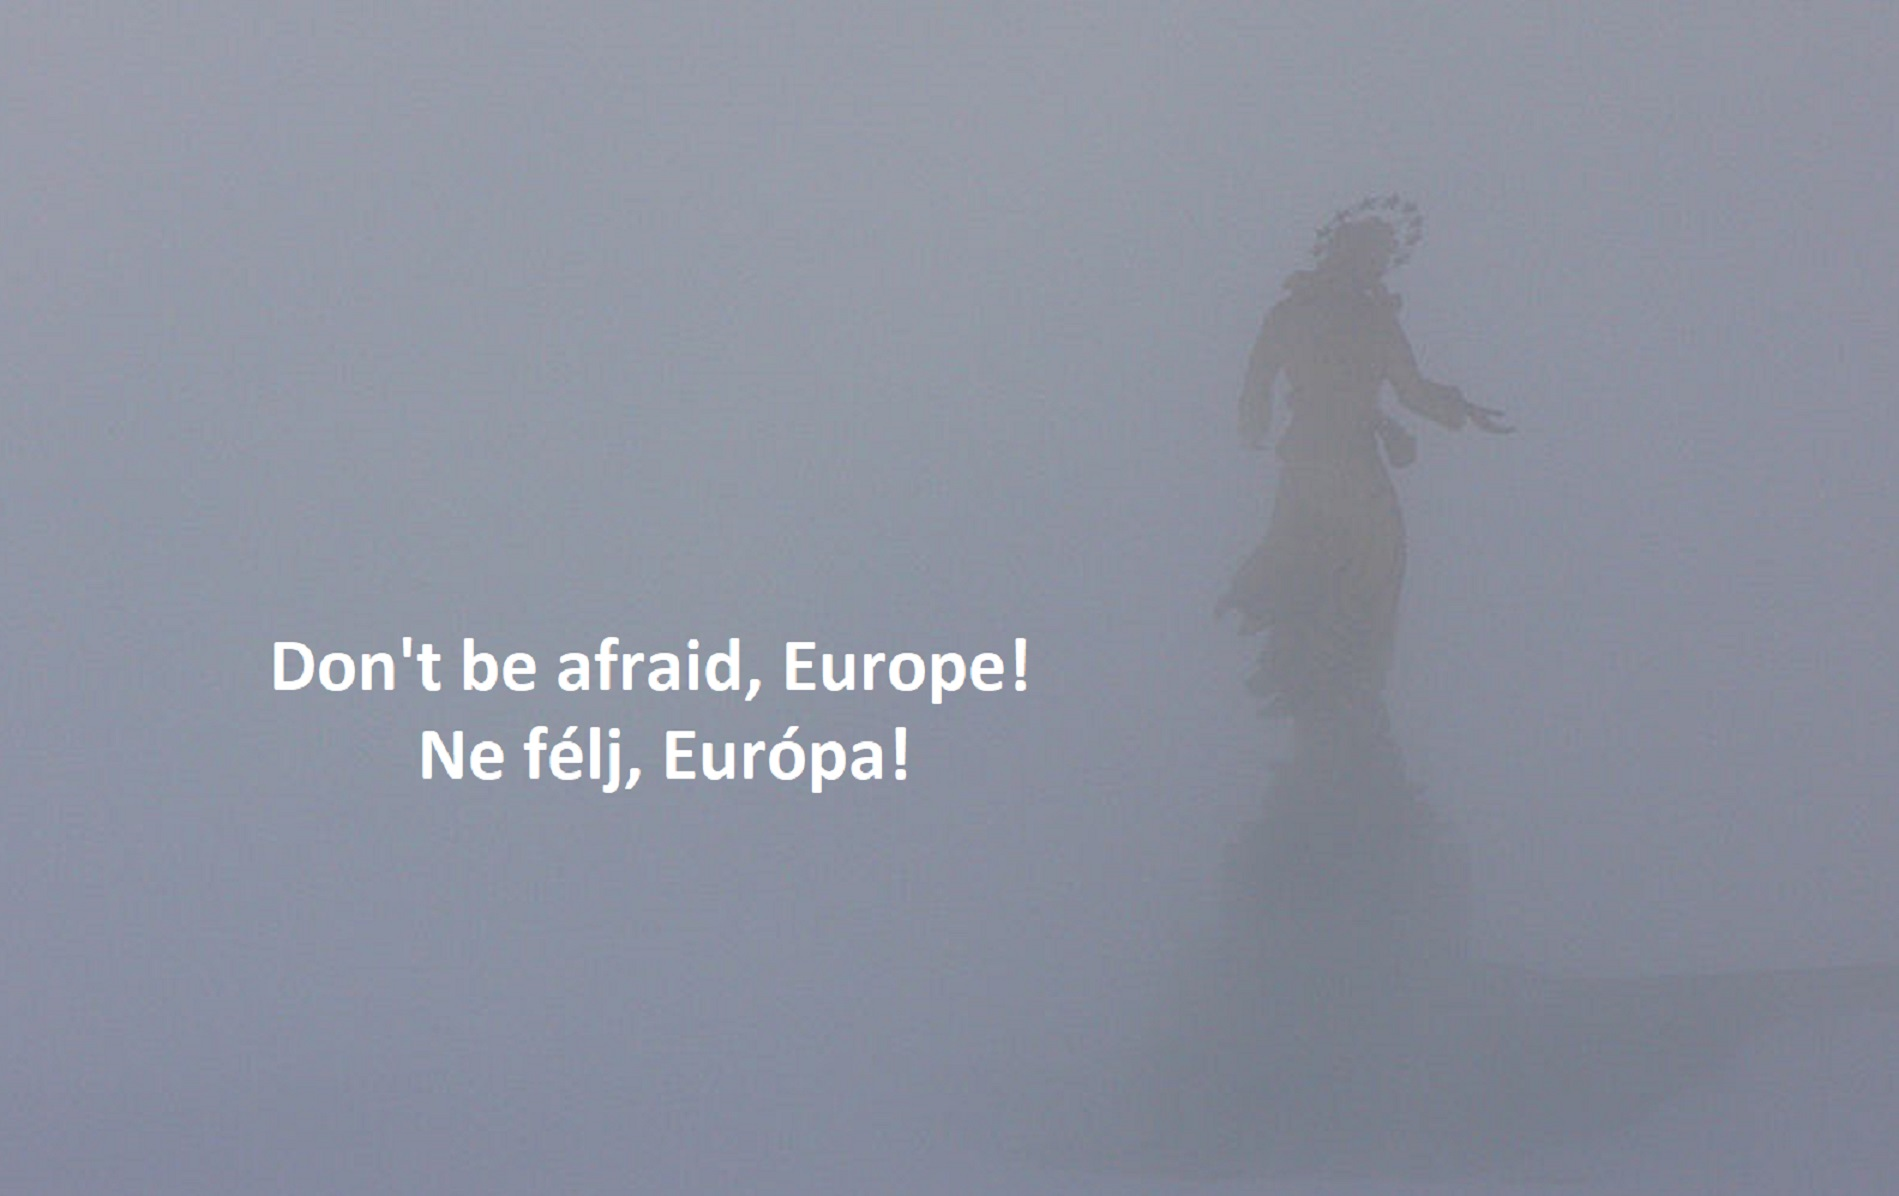 Our Lady of Europe